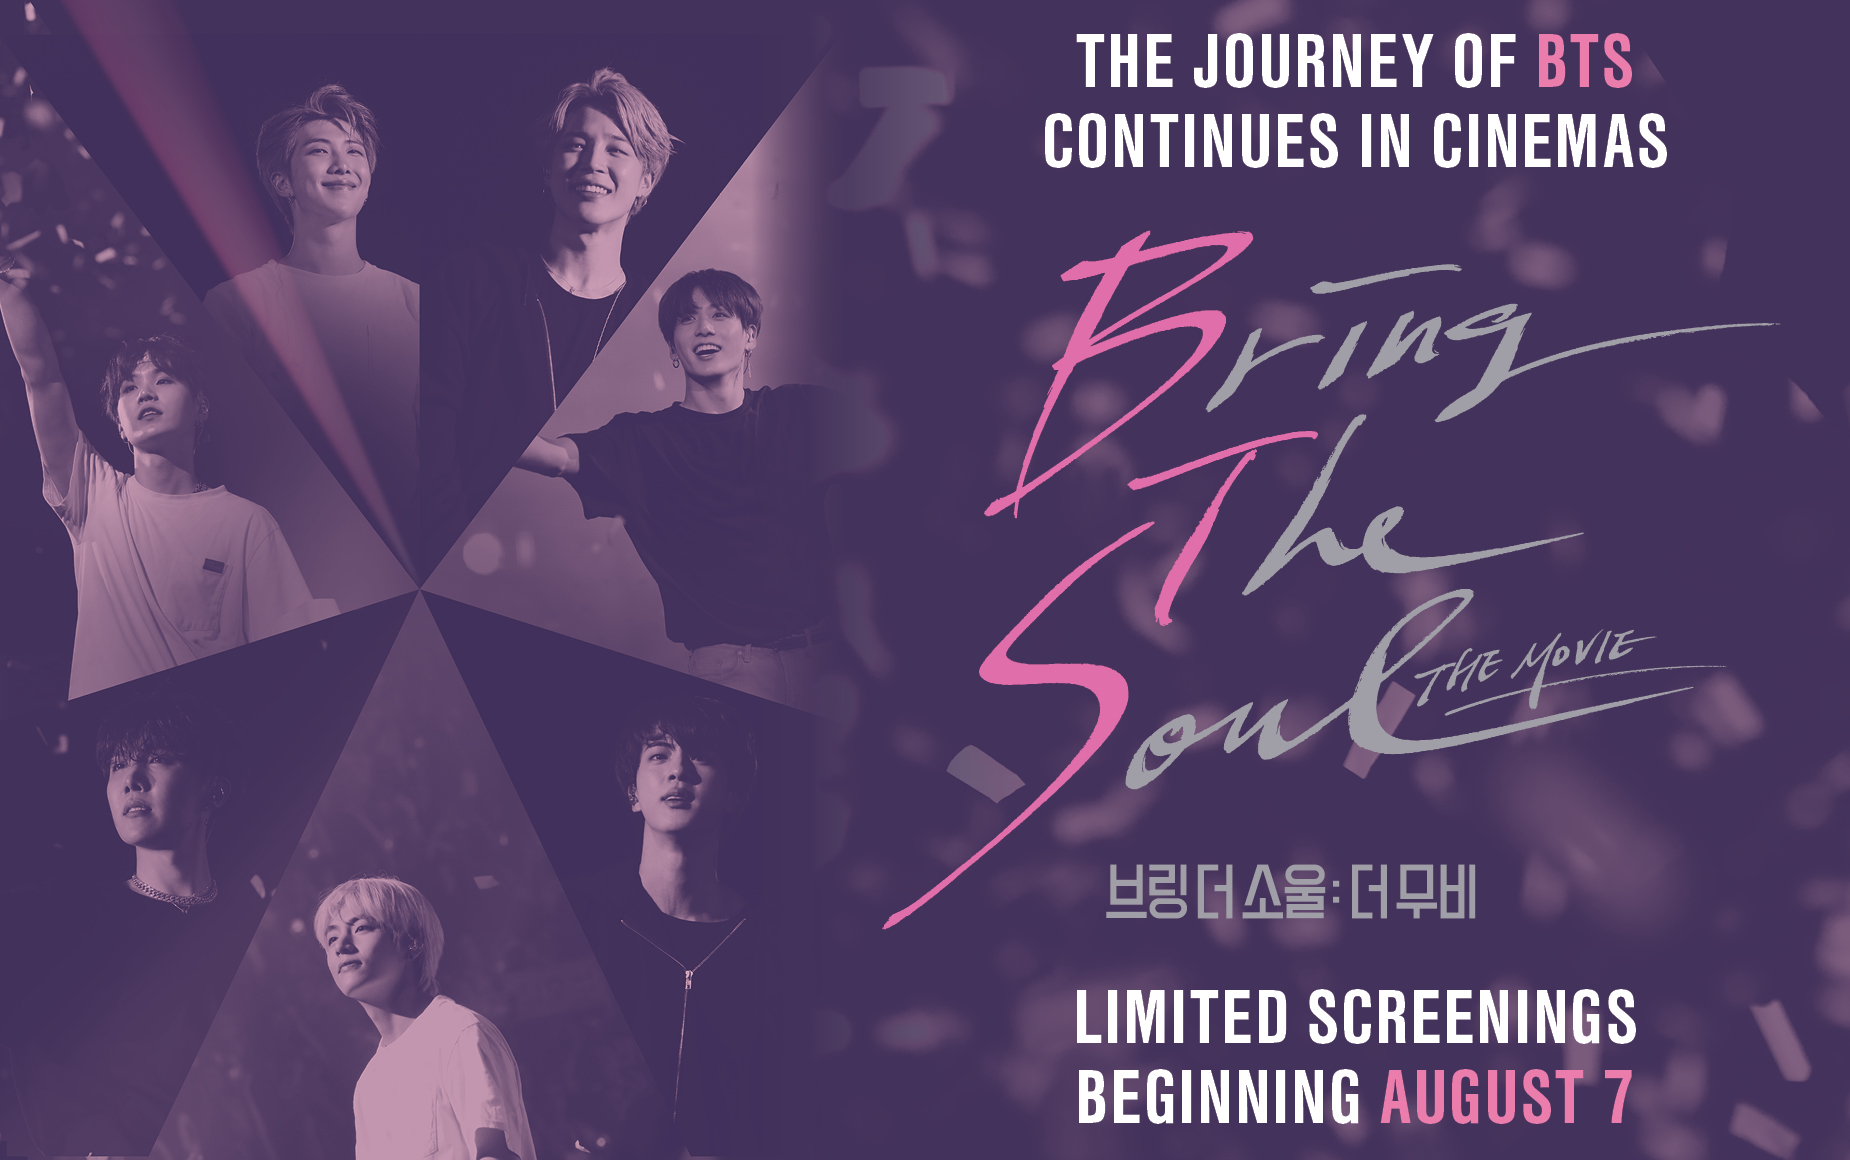 Bring The Soul The Movie Epk Bring The Soul The Movie Ticketing